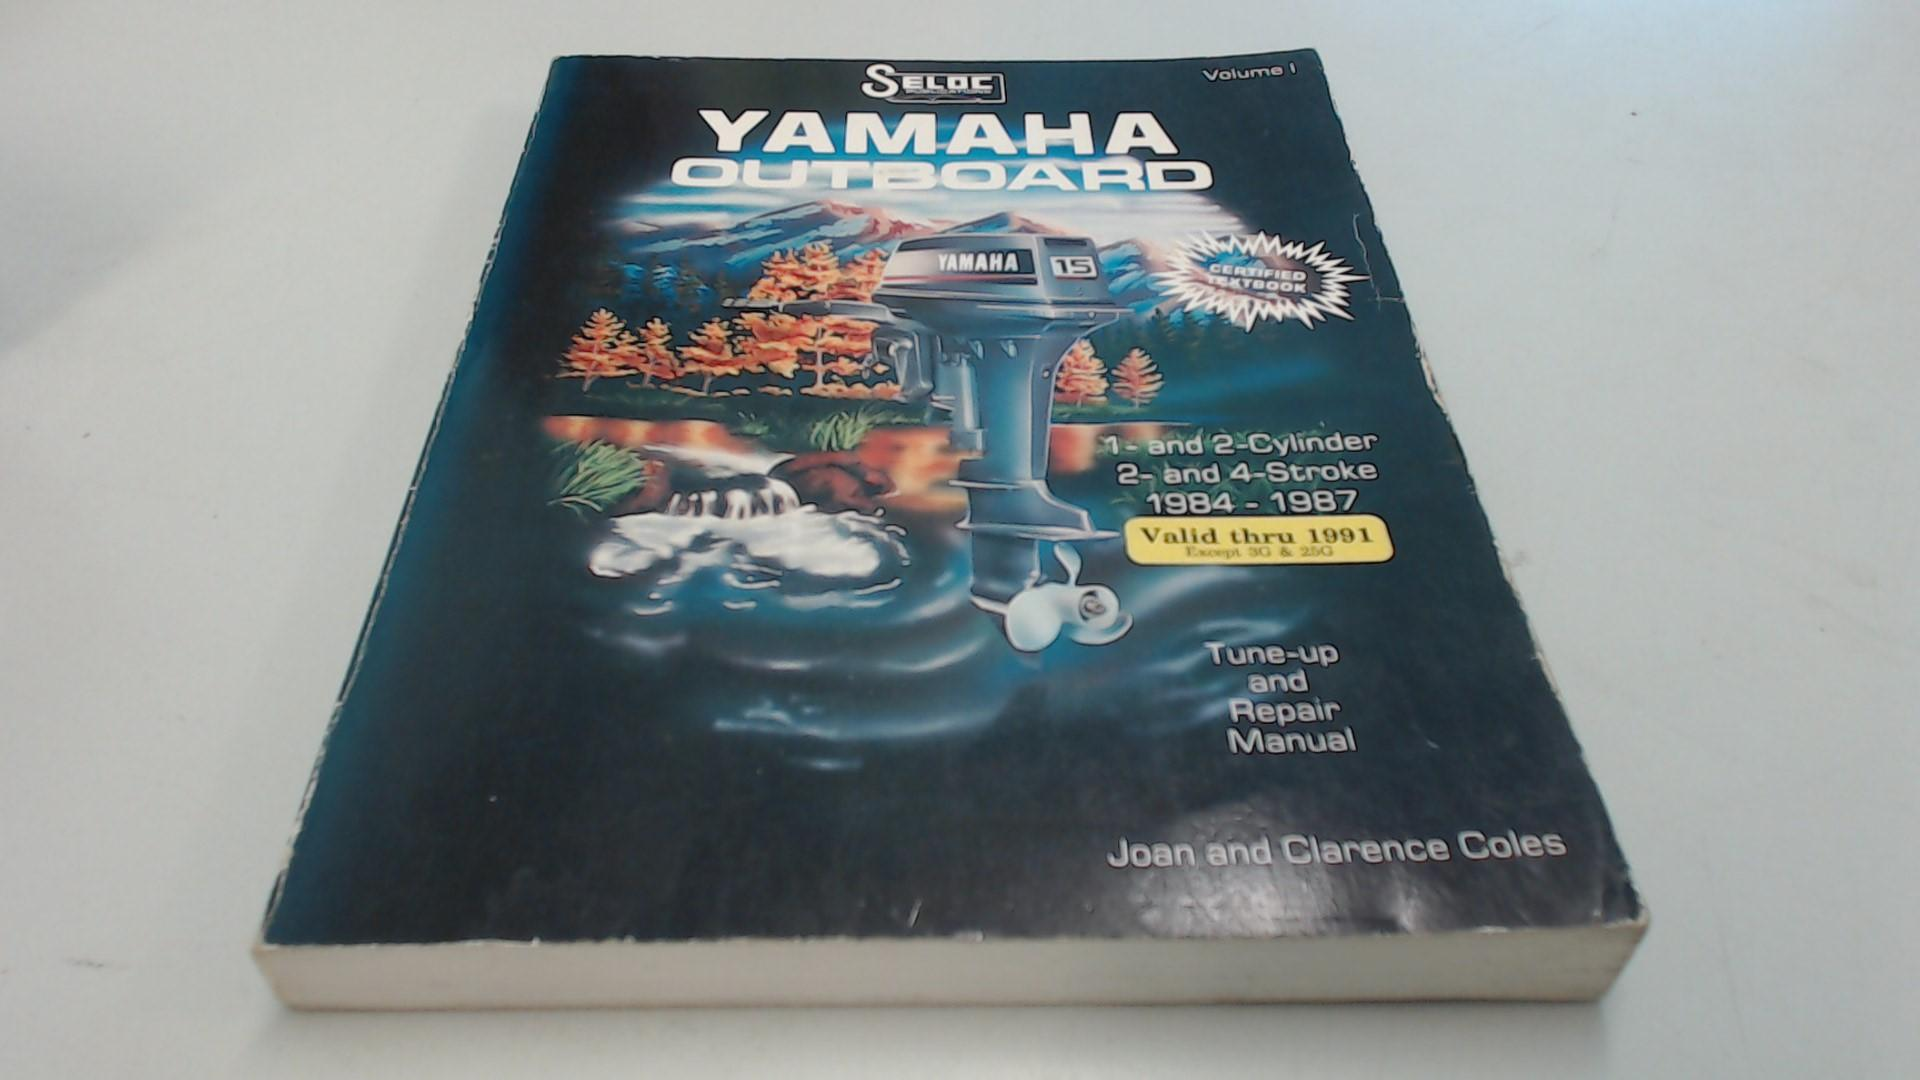 Yamaha Outboards 1984-1991 4 & 6 Cylinders Books Ships rhcv.be